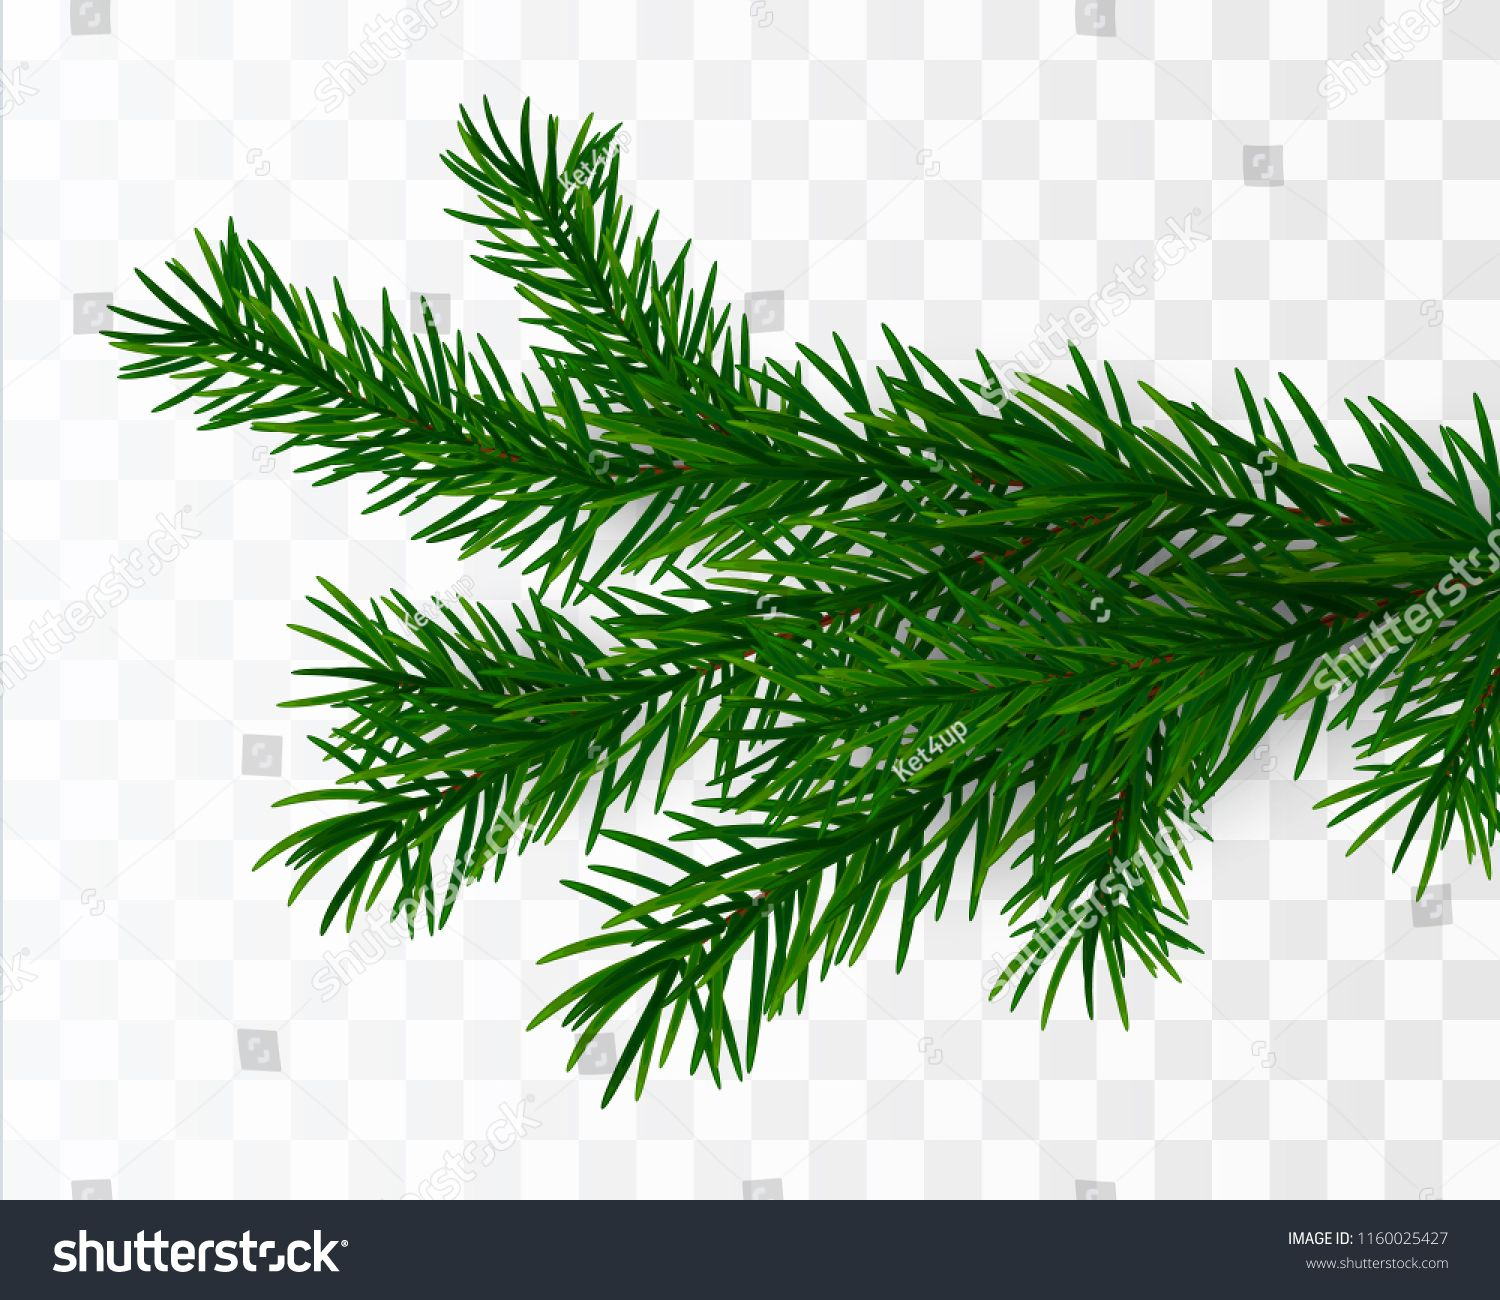 Christmas Tree Branch Fir Branch Isolated Vector Illustration Branch Tree Christmas Fir Christmas Tree Branches Tree Branches Christmas Vectors